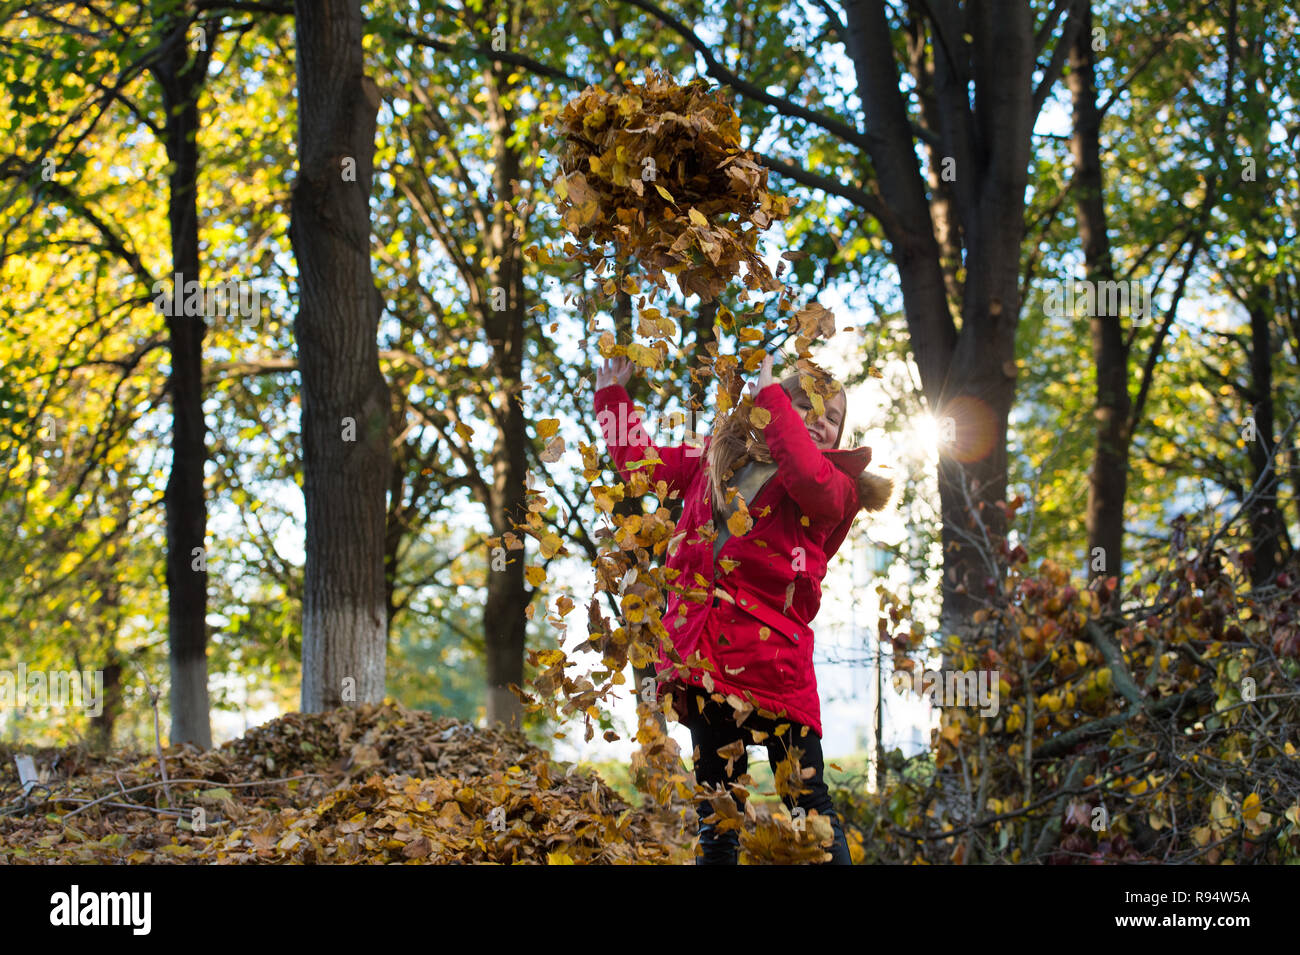 Fall clothes and fashion concept. Child blonde long hair walking fall park background. Girl happy wear coat with hood enjoy fall nature. Child wear coat for fall season. Baby play toss fallen leaves. - Stock Image